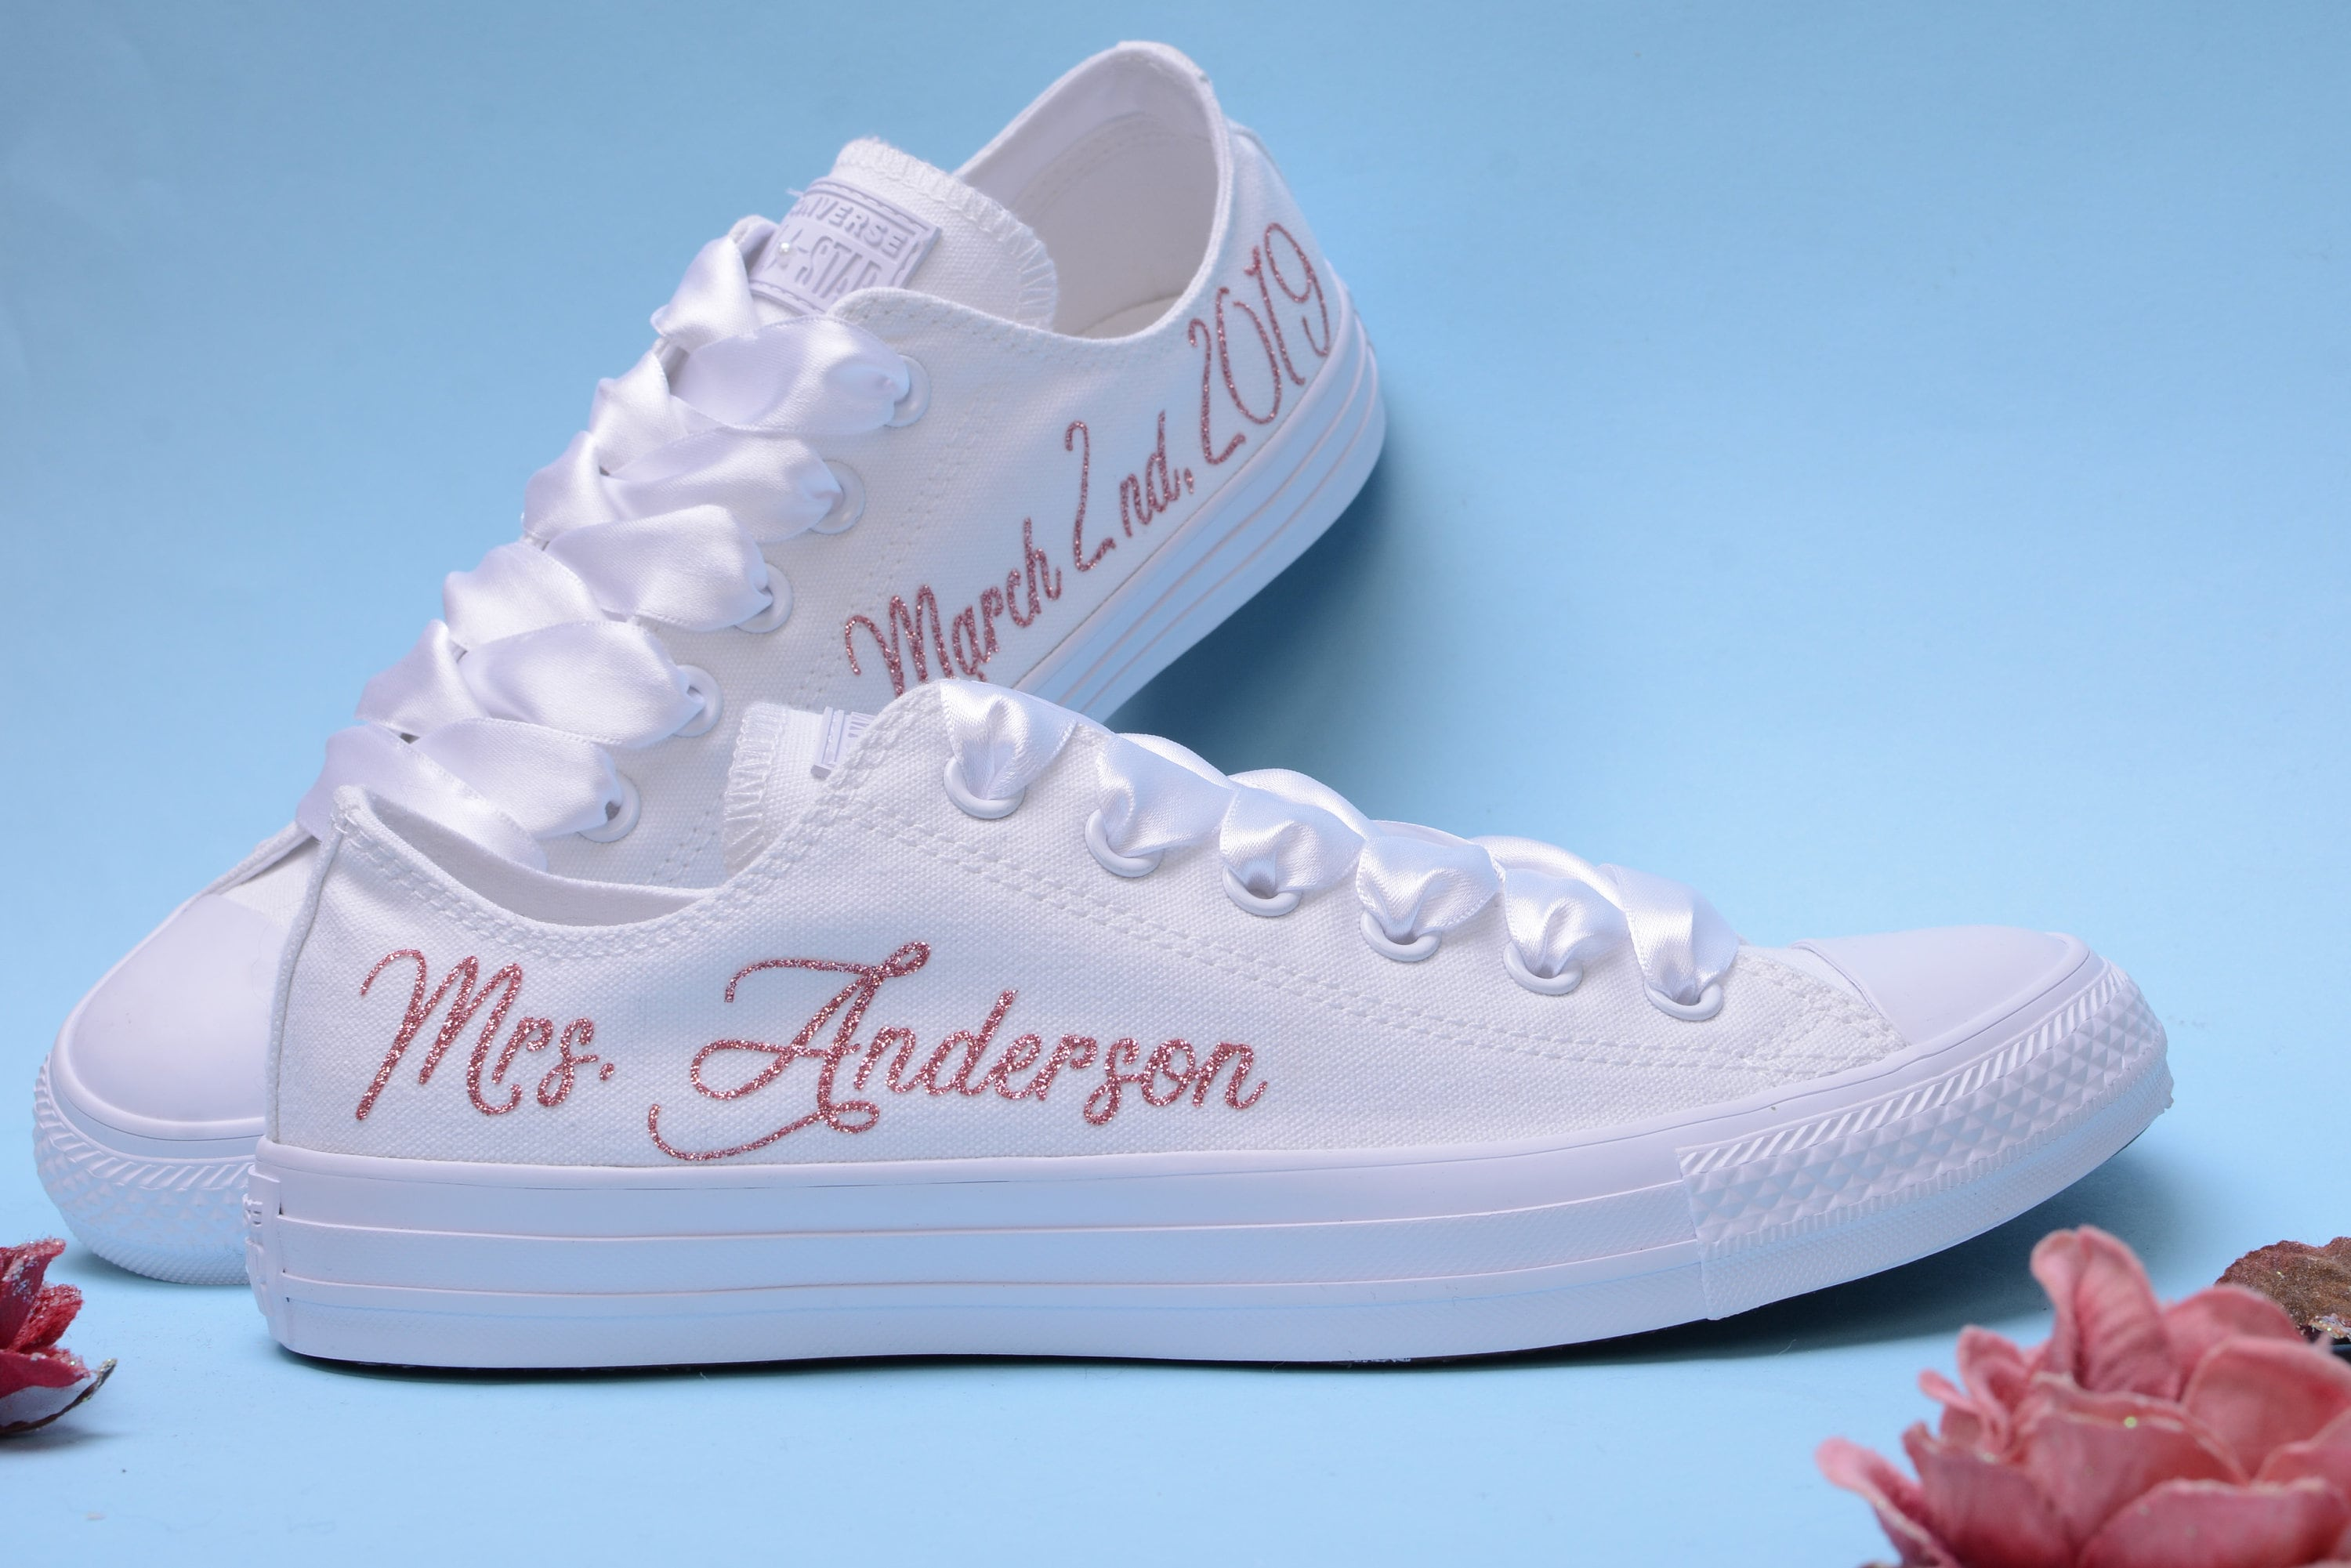 Personalized Converse shoes for Bride, Customised Converse, Monogrammed Converse, White Monochrome Bridal Converse